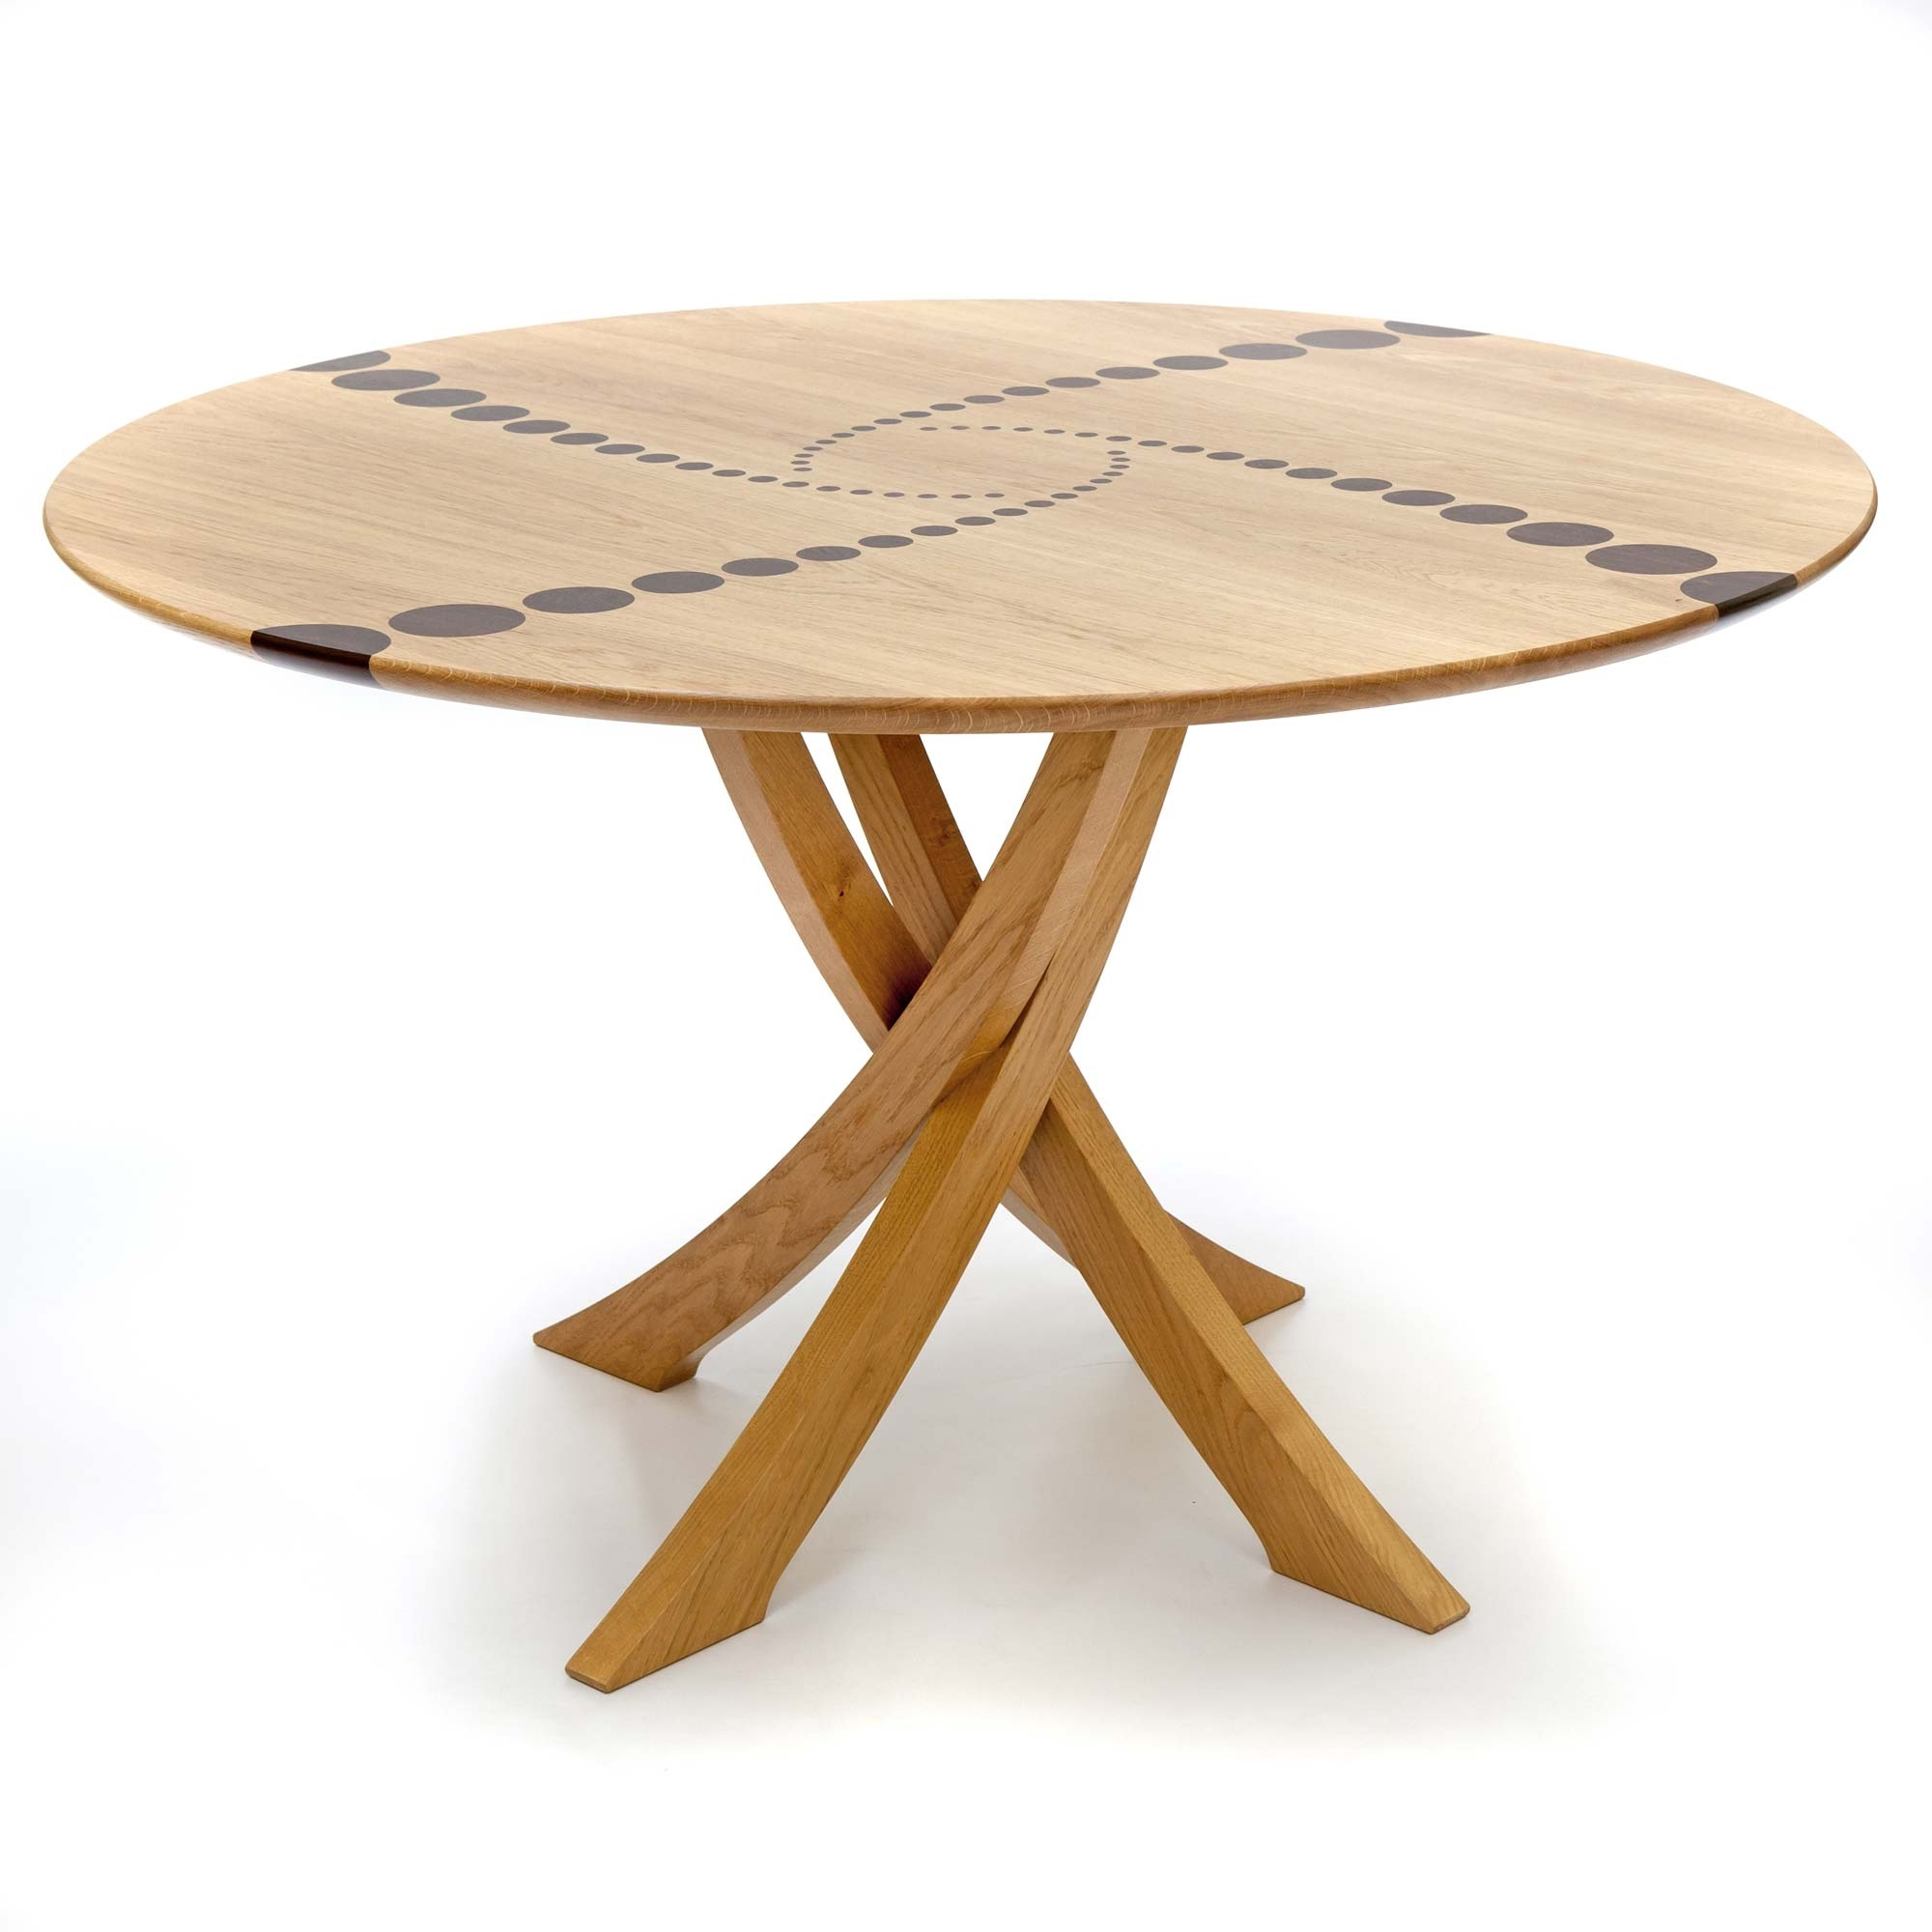 Makers' Eye Pertaining To Trendy Circular Oak Dining Tables (View 18 of 25)